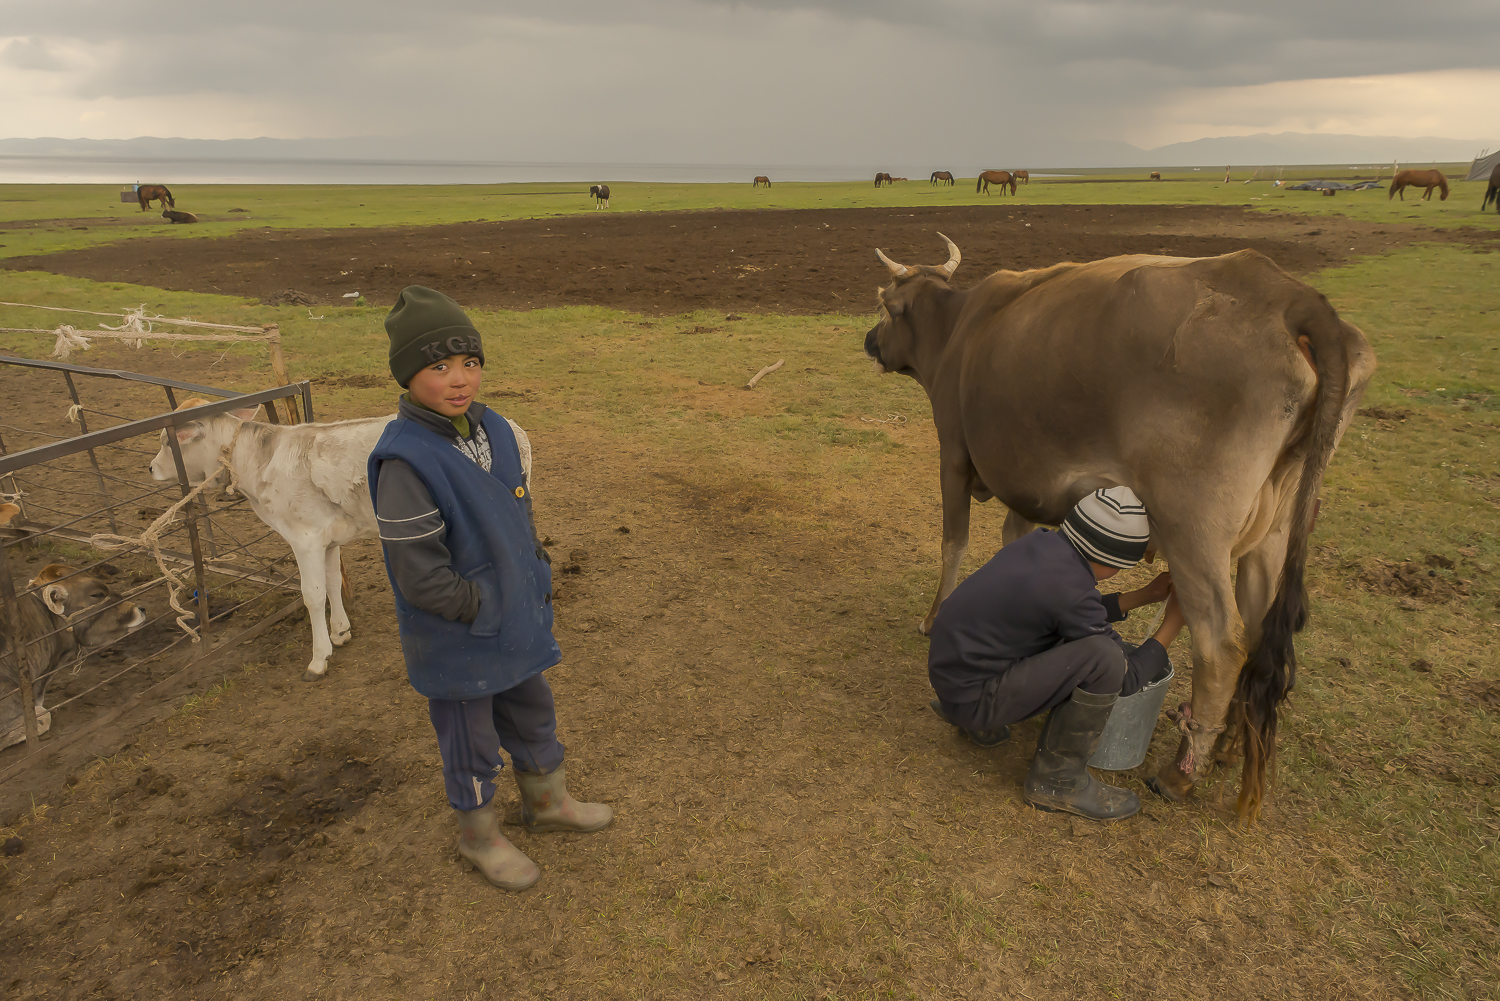 boy-milking-jo-kearney-photography-video-kyrgyzstan-nomads-milking-donkeys-photos-prints.jpg